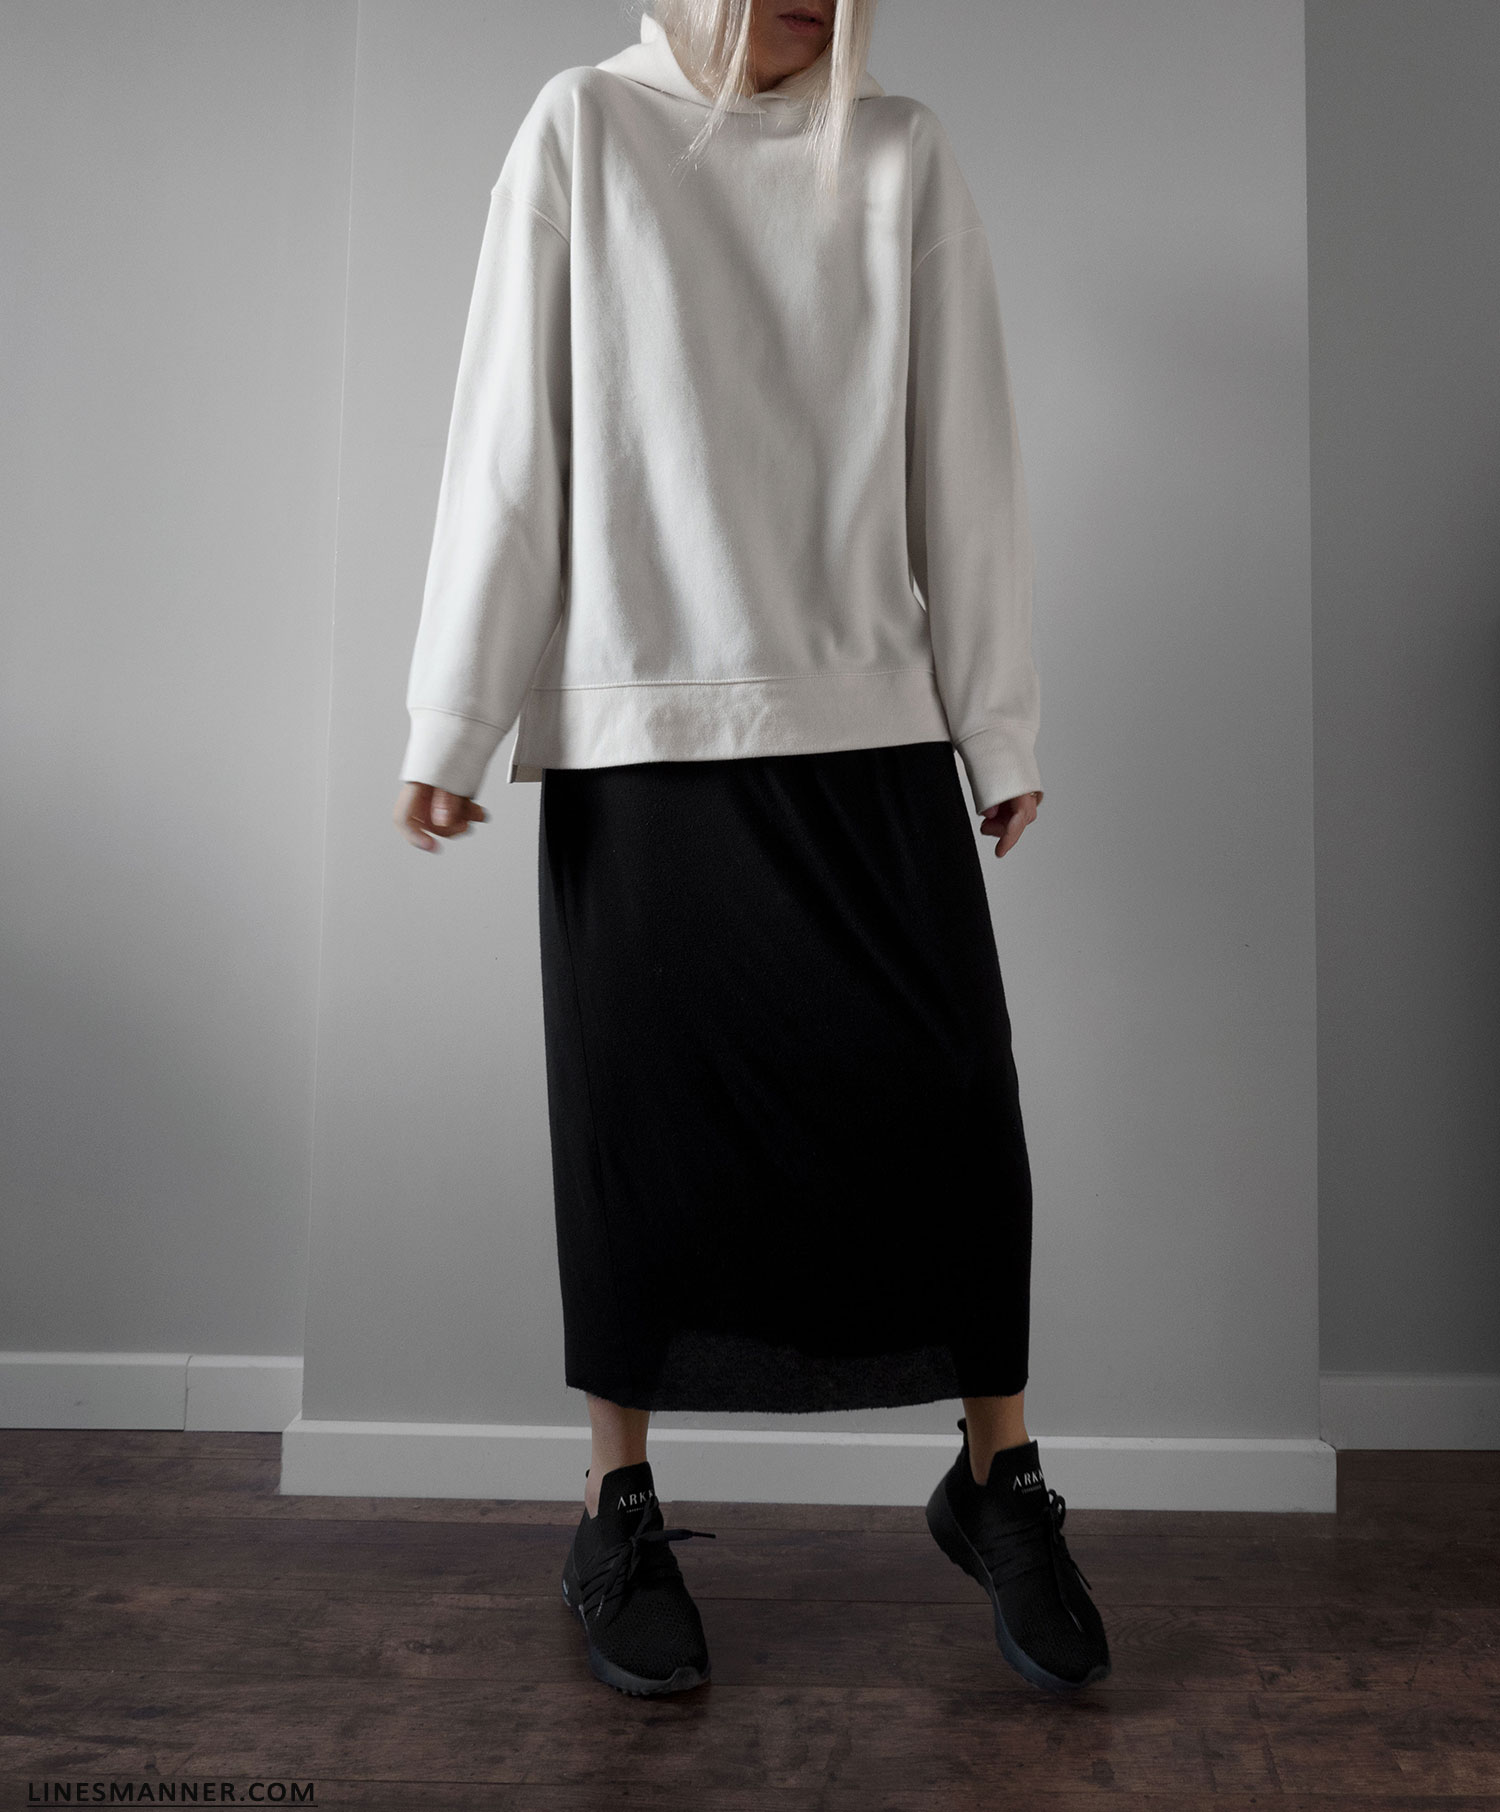 Lines_Manner-Hoodie-Minimal_Outfit-Maxi_Dress-Layering-Effortless-Sporty_Chic-Quality-Uniqlo-2